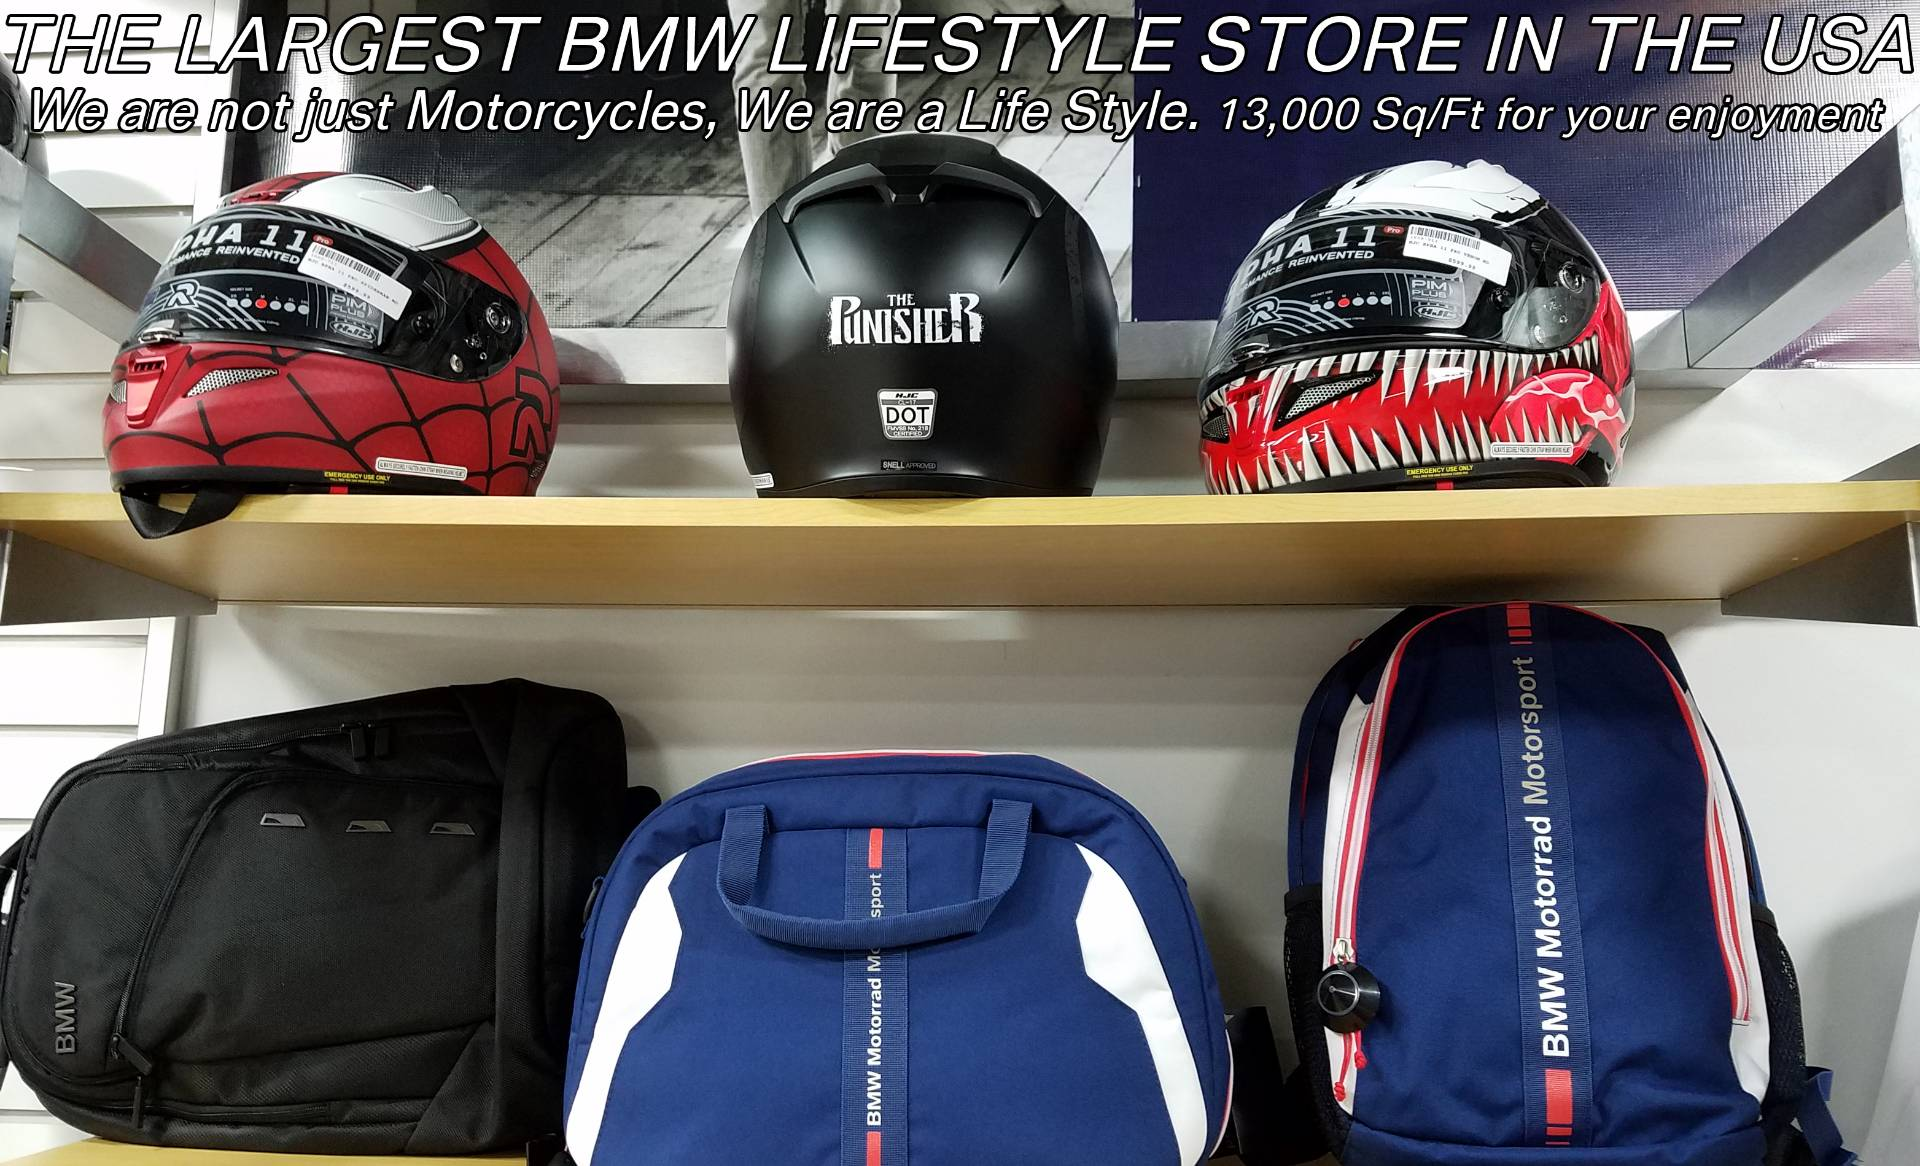 Used 2017 BMW R nine T For Sale, Pre owned BMW R nineT For Sale, BMW Motorcycle RnineT, BMW Motorcycles of Miami, Motorcycles of Miami, Motorcycles Miami - Photo 34